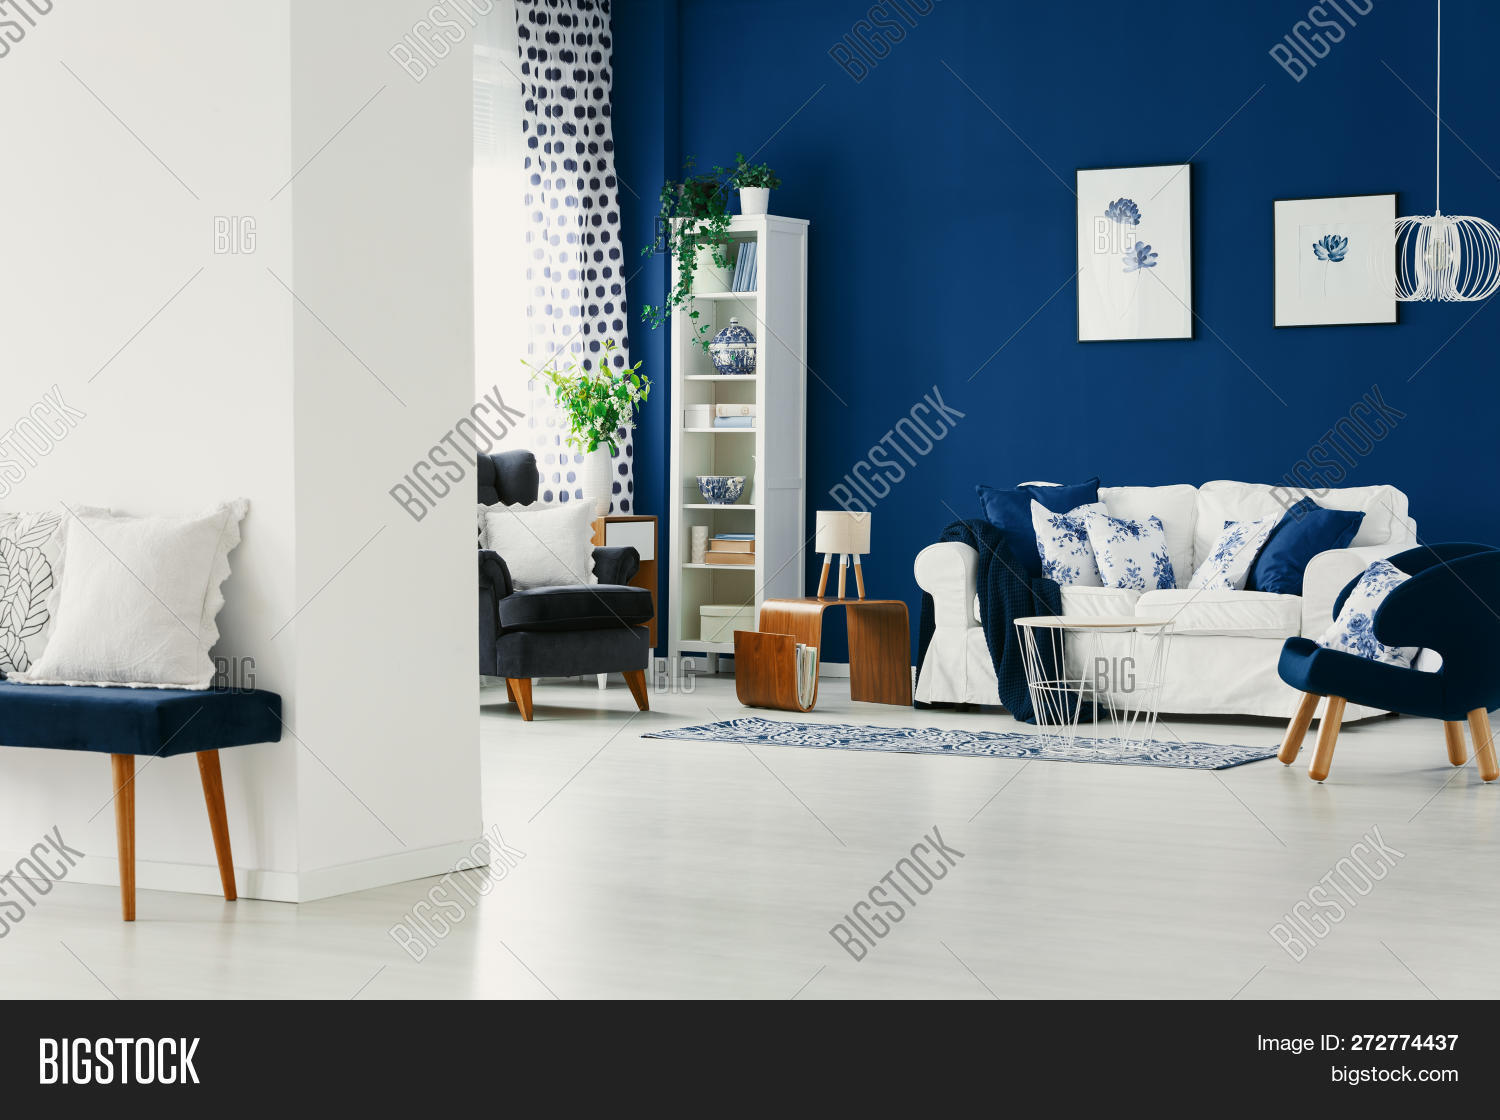 Cly Living Room Image Photo Free